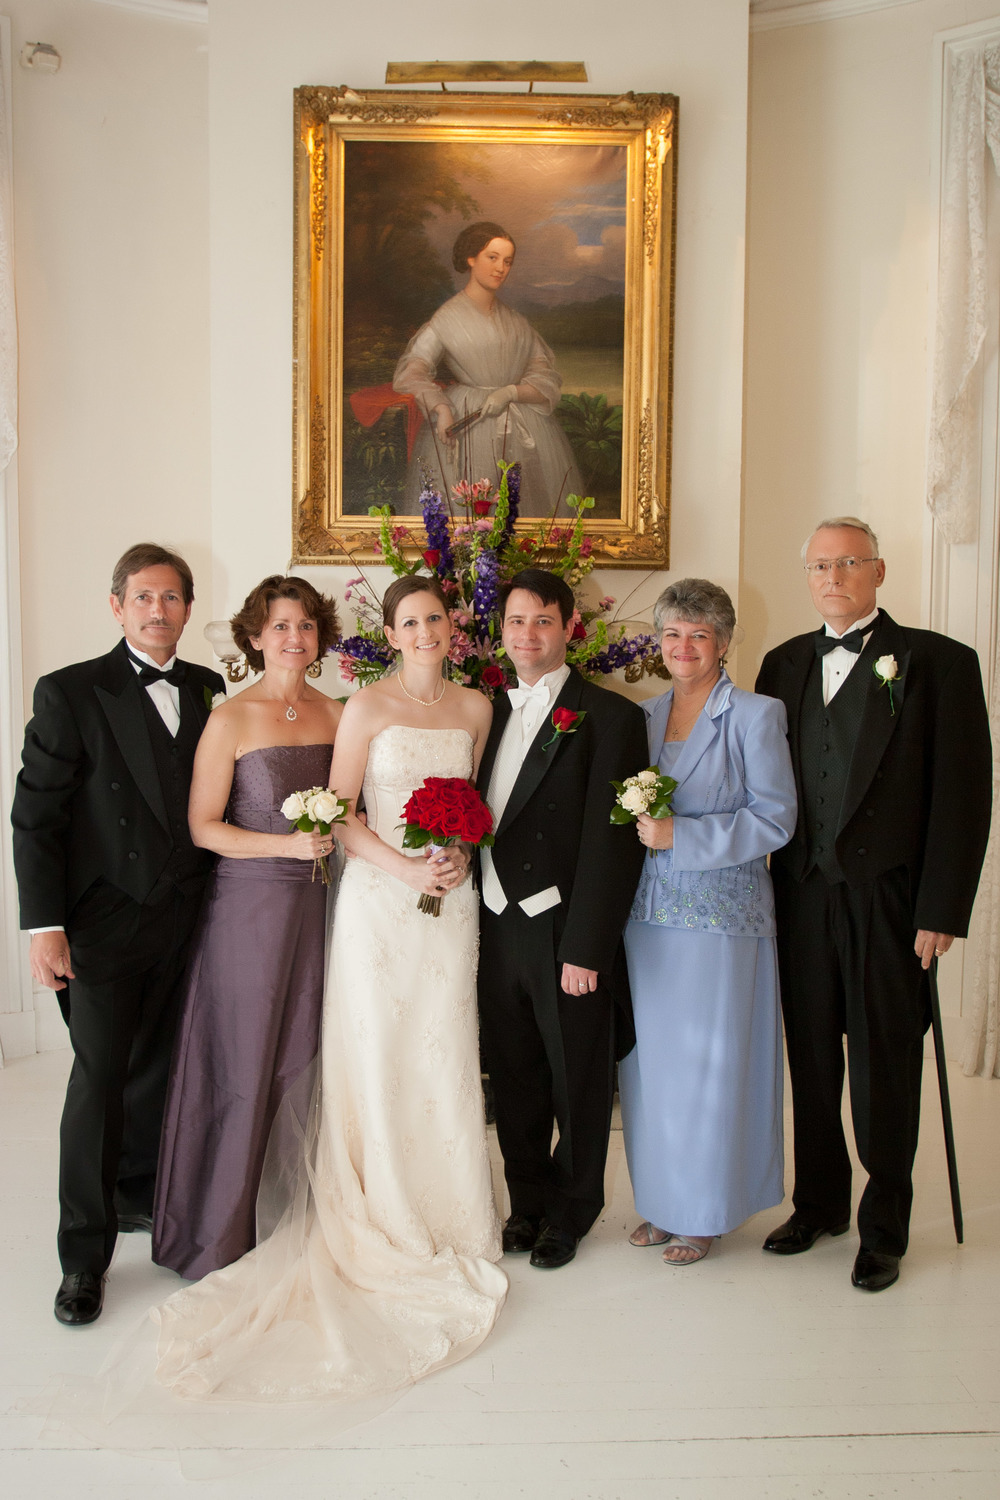 This is the photo my daughter will likely cherish as I cherish the similar photo of my parents with all of my grandparents. This is the only photo I know of all 6 of us together. I always take this photo at weddings.